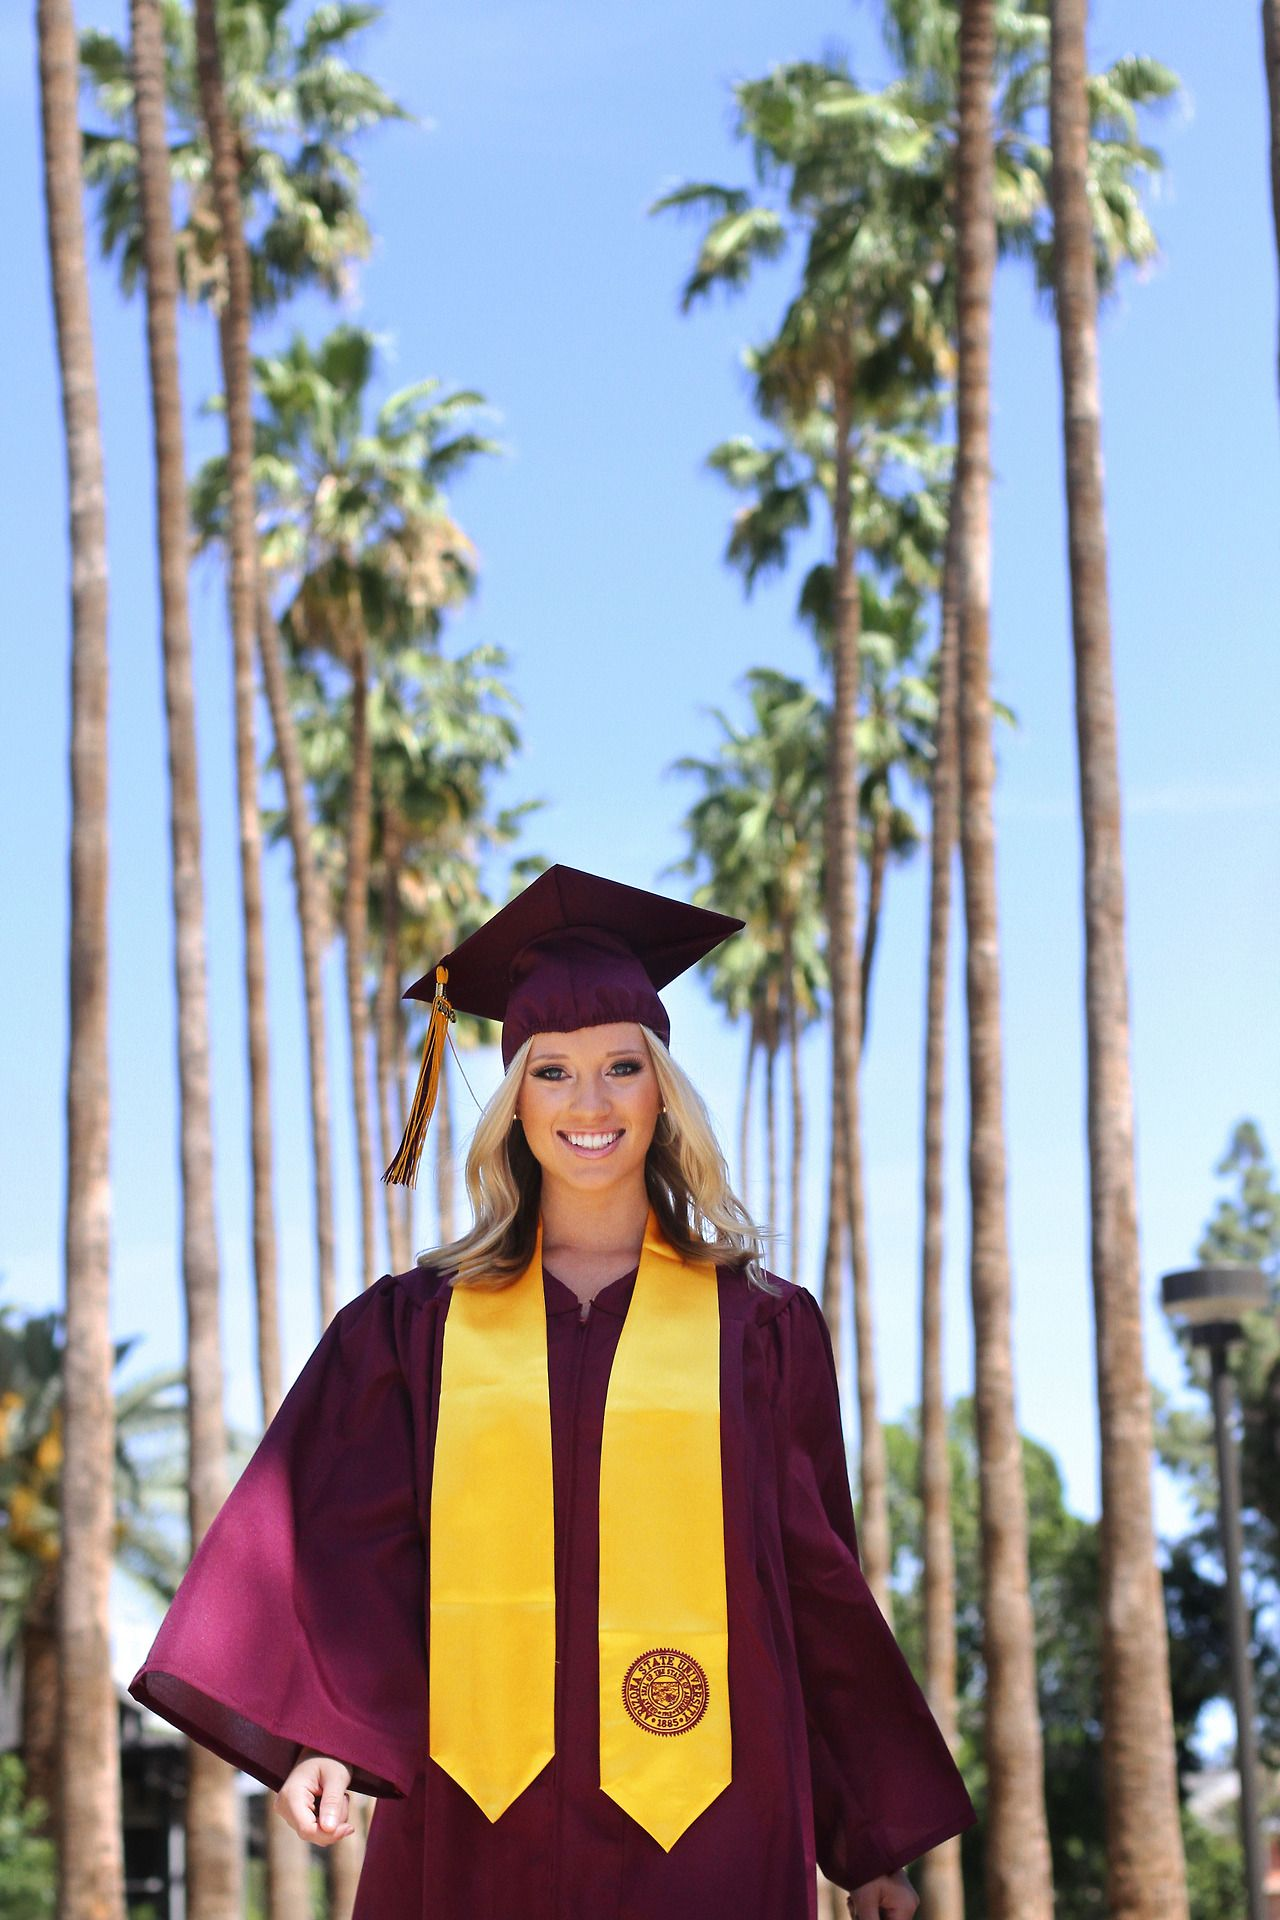 Senior Cap and Gown | Senior Photography | Pinterest | Cap, Gowns ...